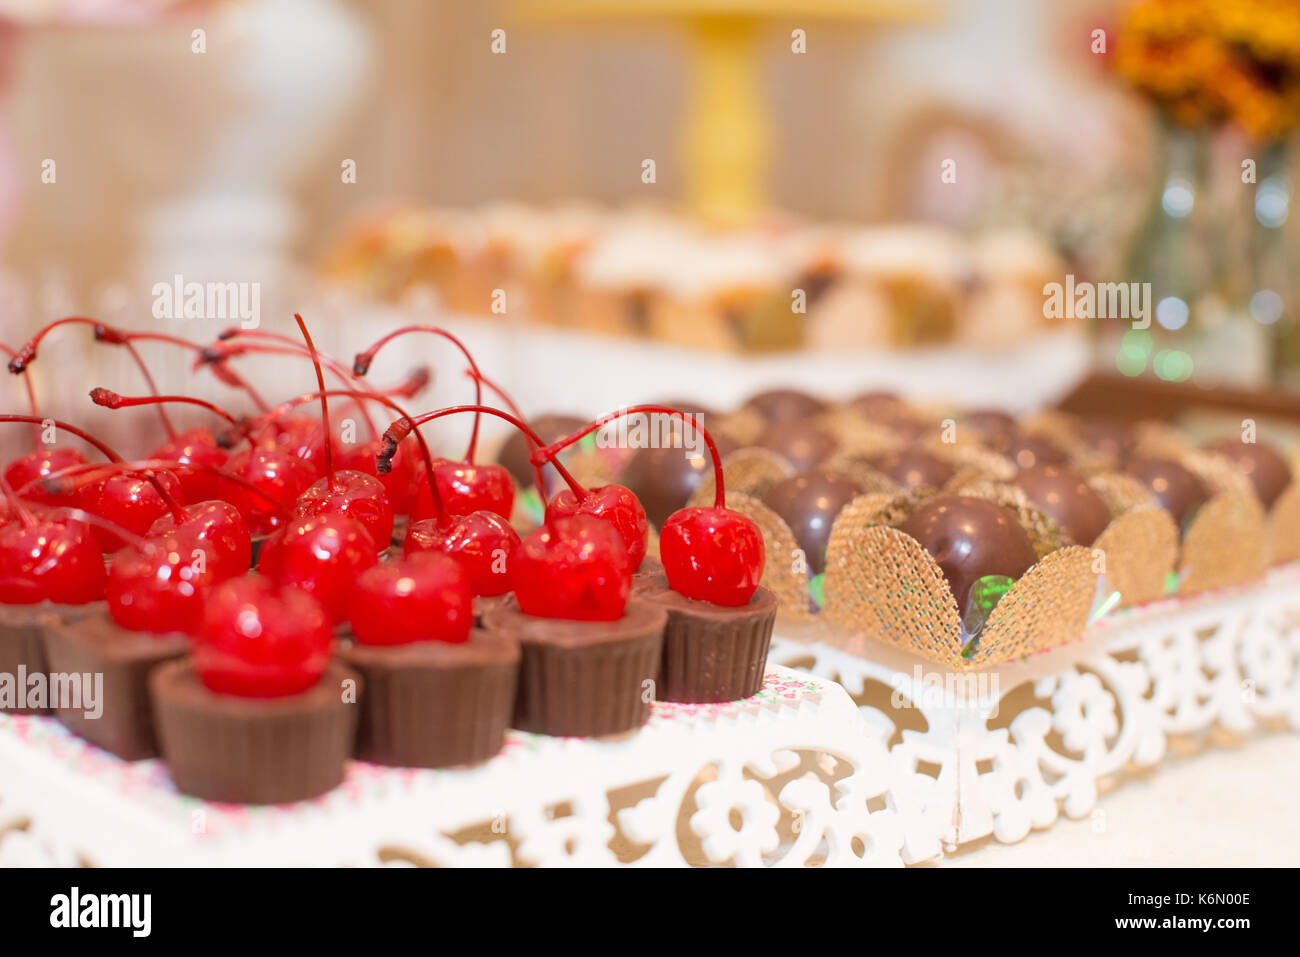 Horizontal Picture Of Beautiful Chocolates With Cherry And Truffles